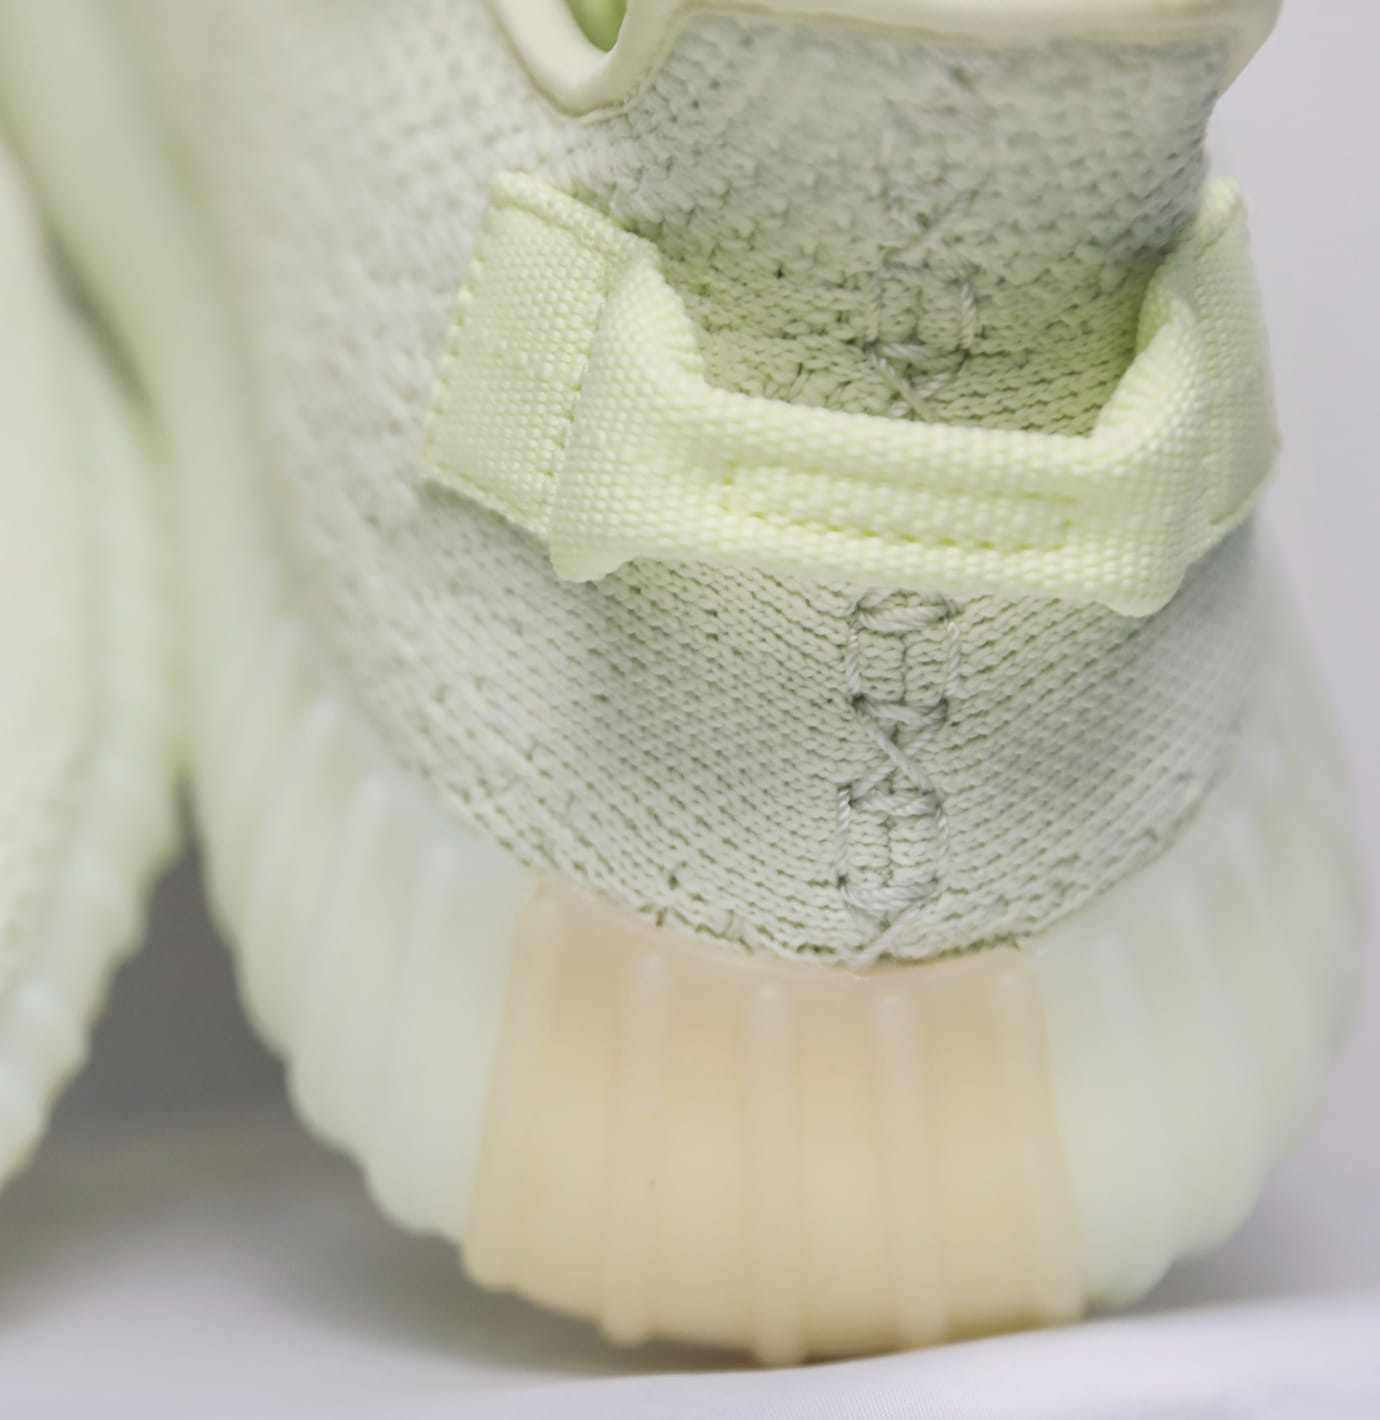 low priced ee38d 4fdf0 Adidas Yeezy Boost 350 V2 'Butter' Images | Sole Collector